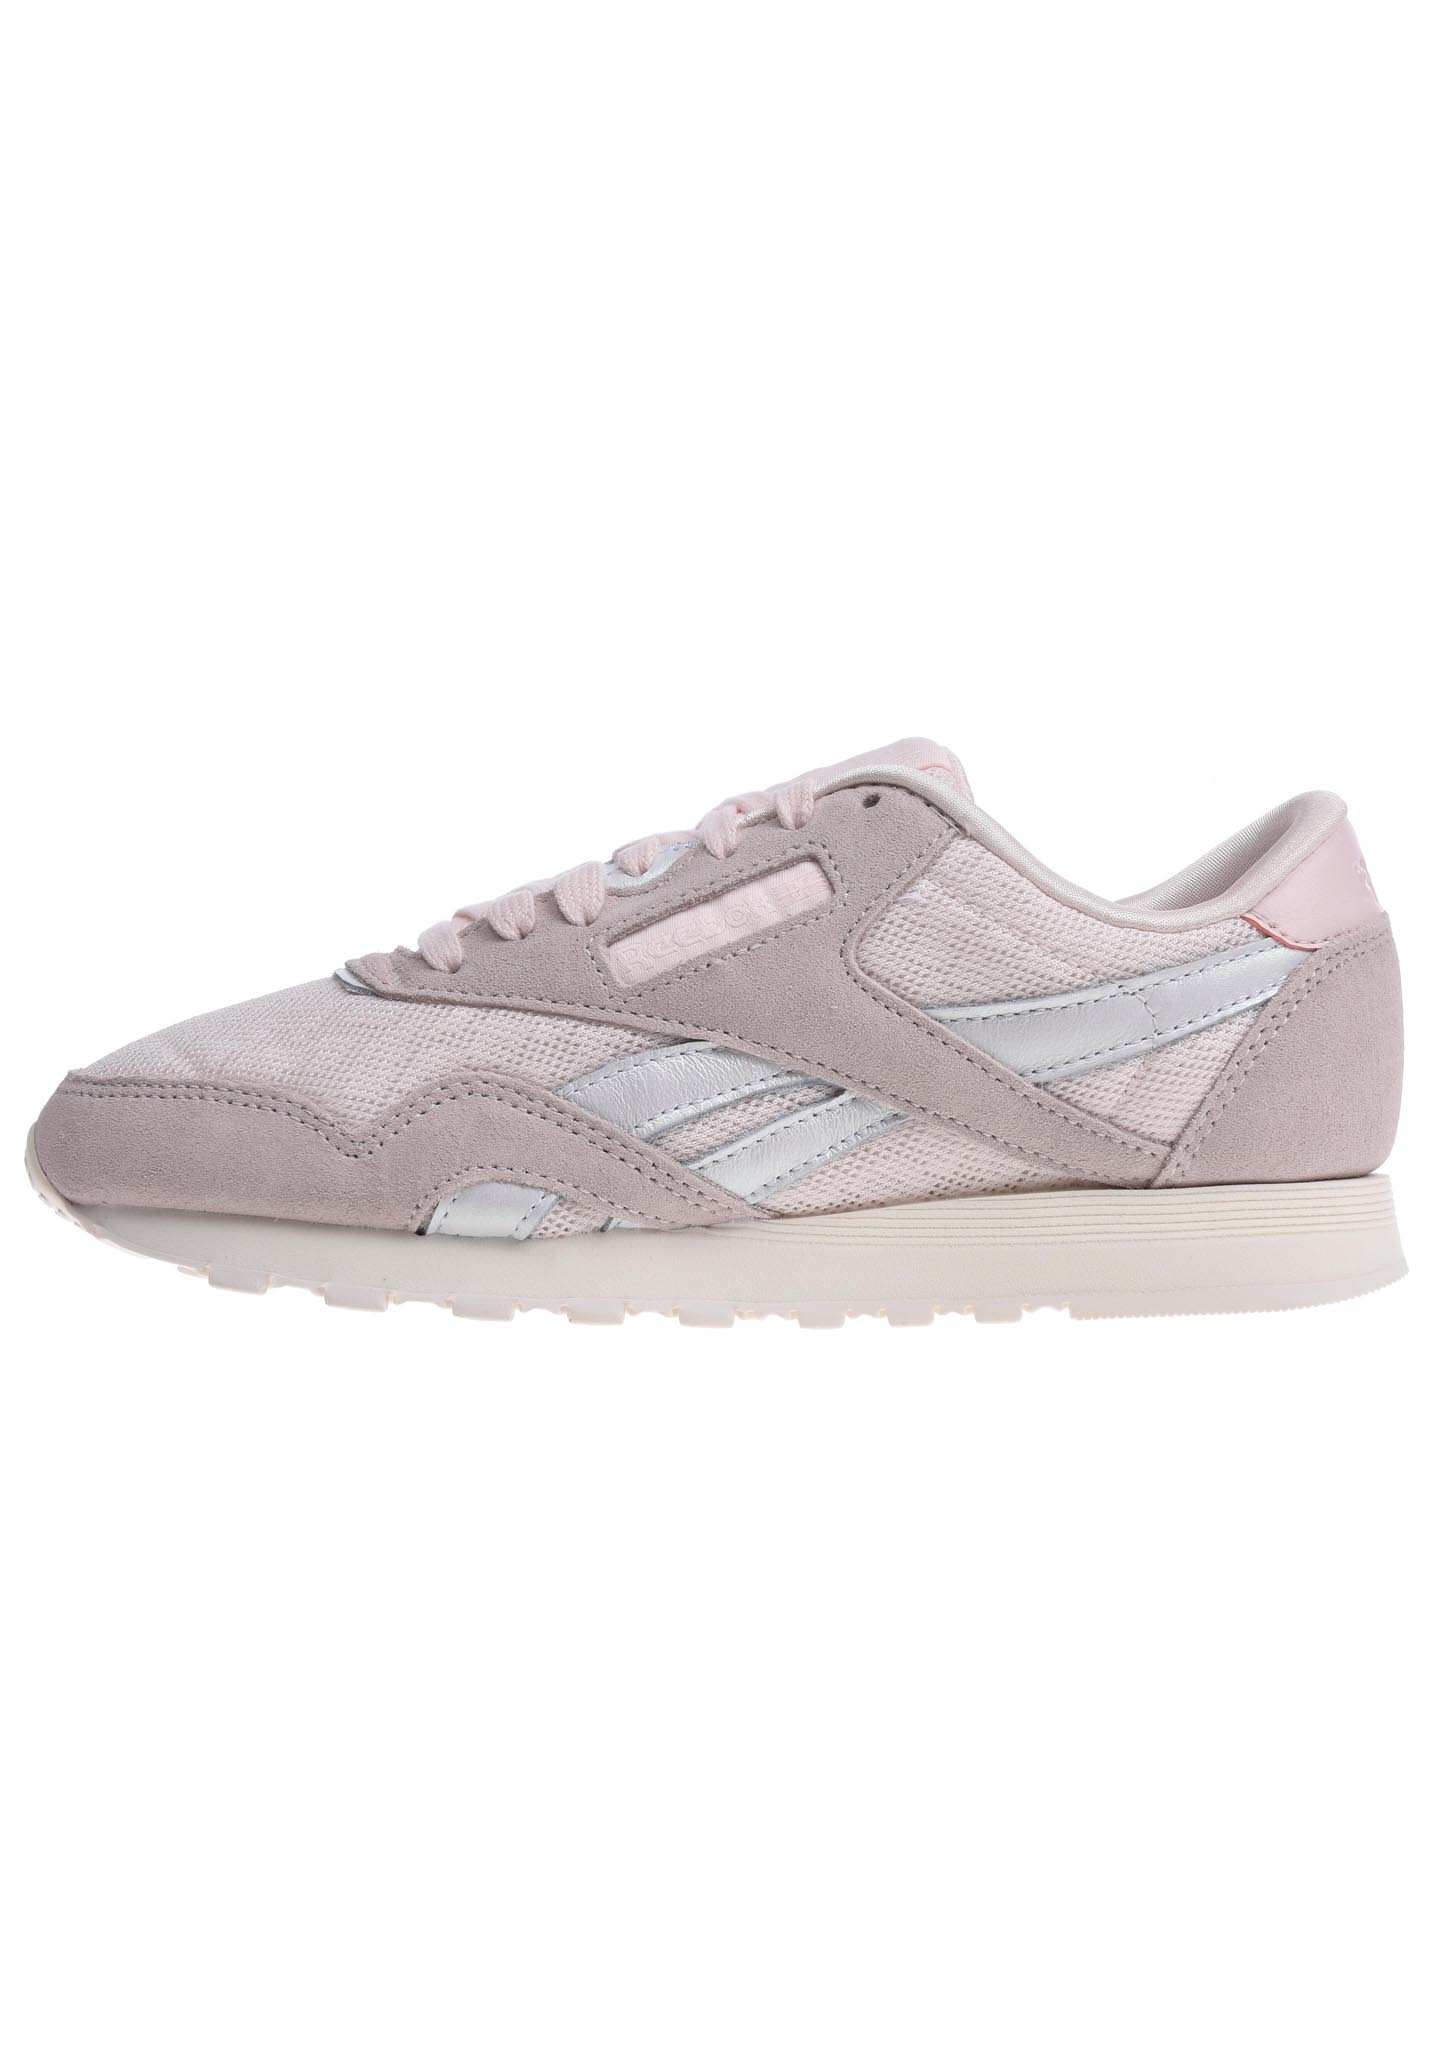 029488229d7b75 Reebok Classic Nylon Cold Paste - Sneakers for Women - Pink - Planet Sports